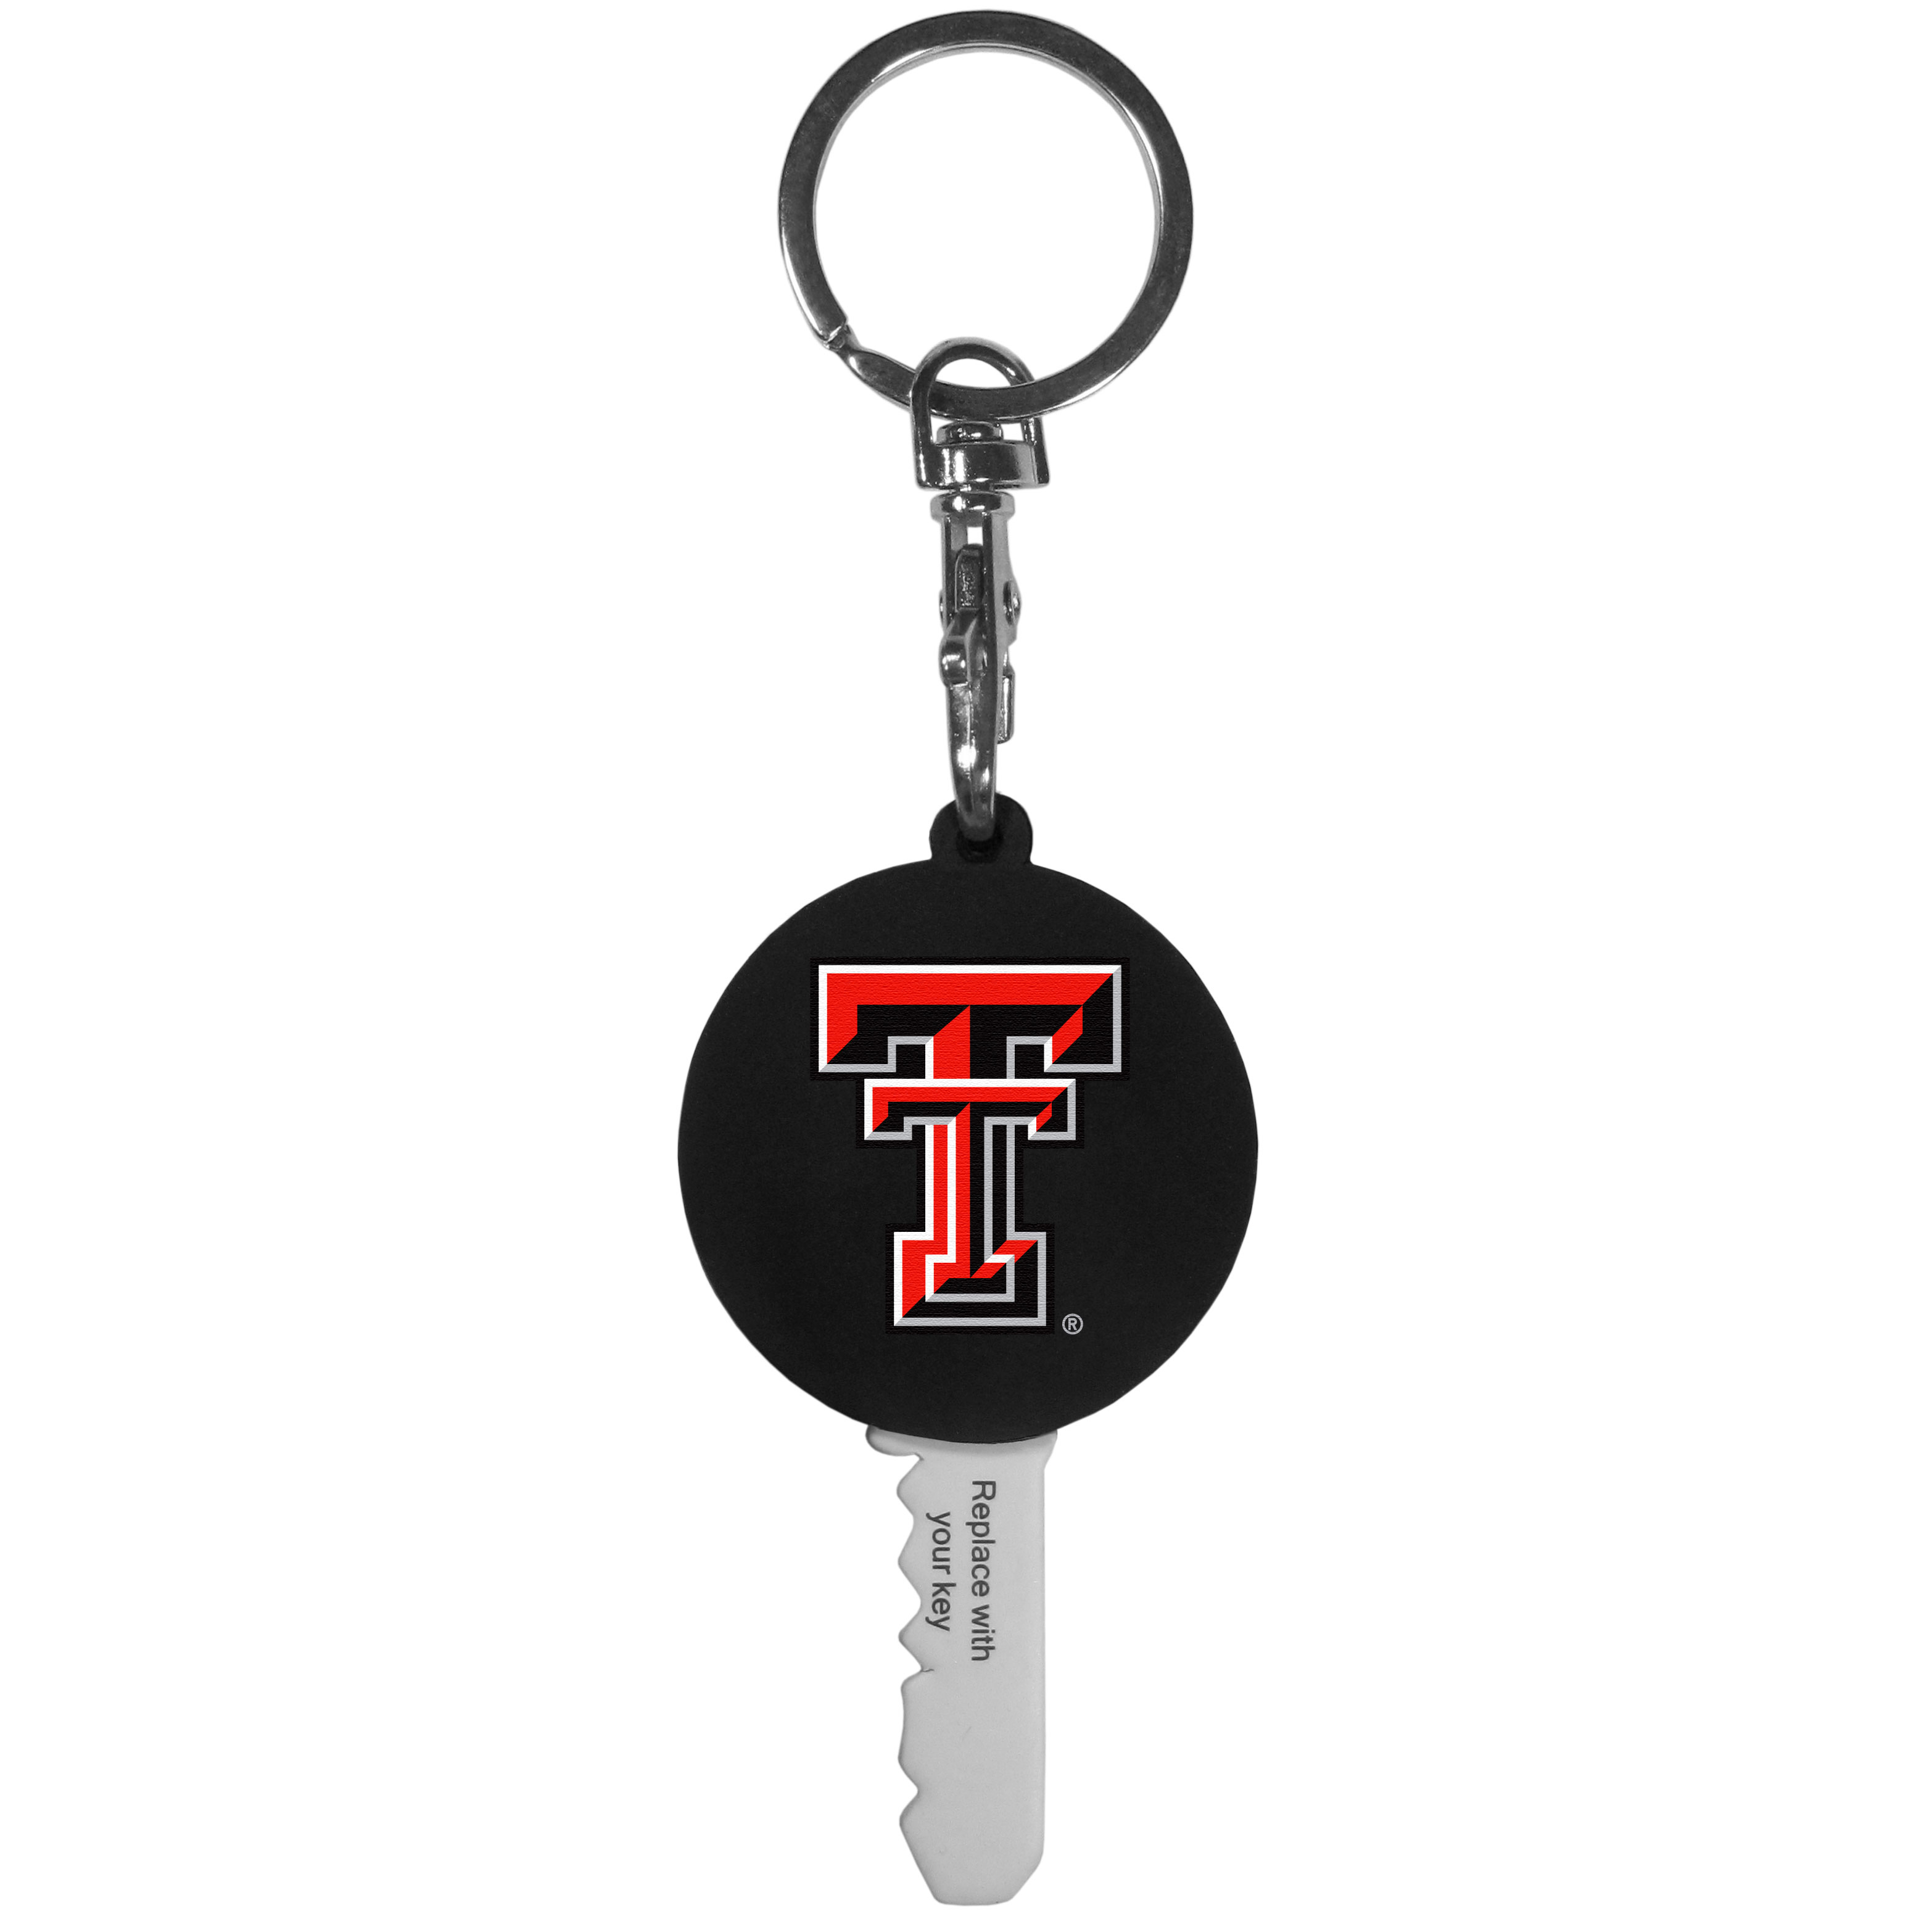 Texas Tech Raiders Mini Light Key Topper - This super handy little key topper has a built in mini light that illuminates the lock so you do not have to fumble in the dark trying to open your door. You slide your house key into the top of the rubber key topper and your ready to go. The topper features a Texas Tech Raiders logo on the front of the topper.